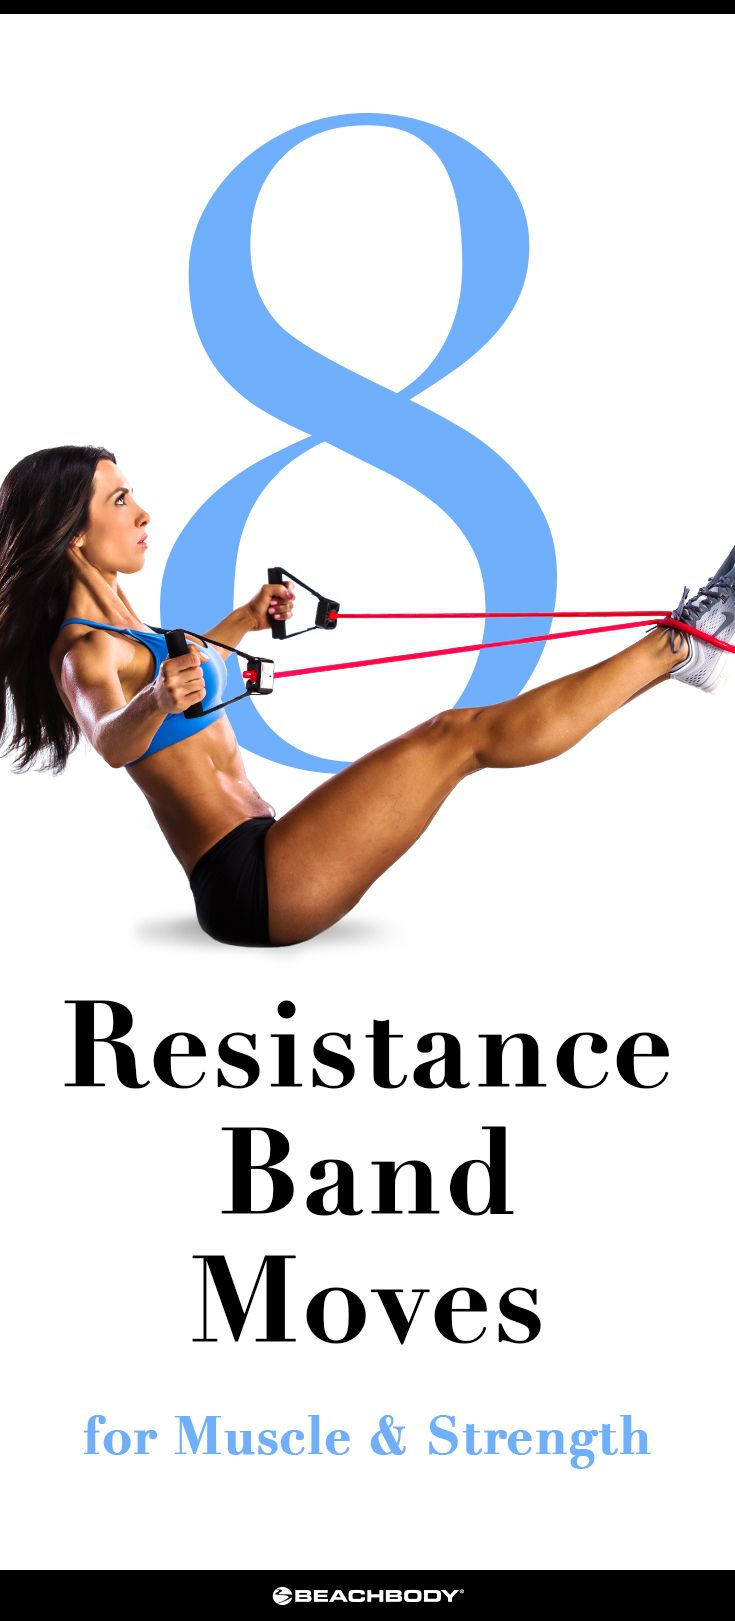 8 Resistance Bands Moves for Muscle and Strength | The Beachbody Blog